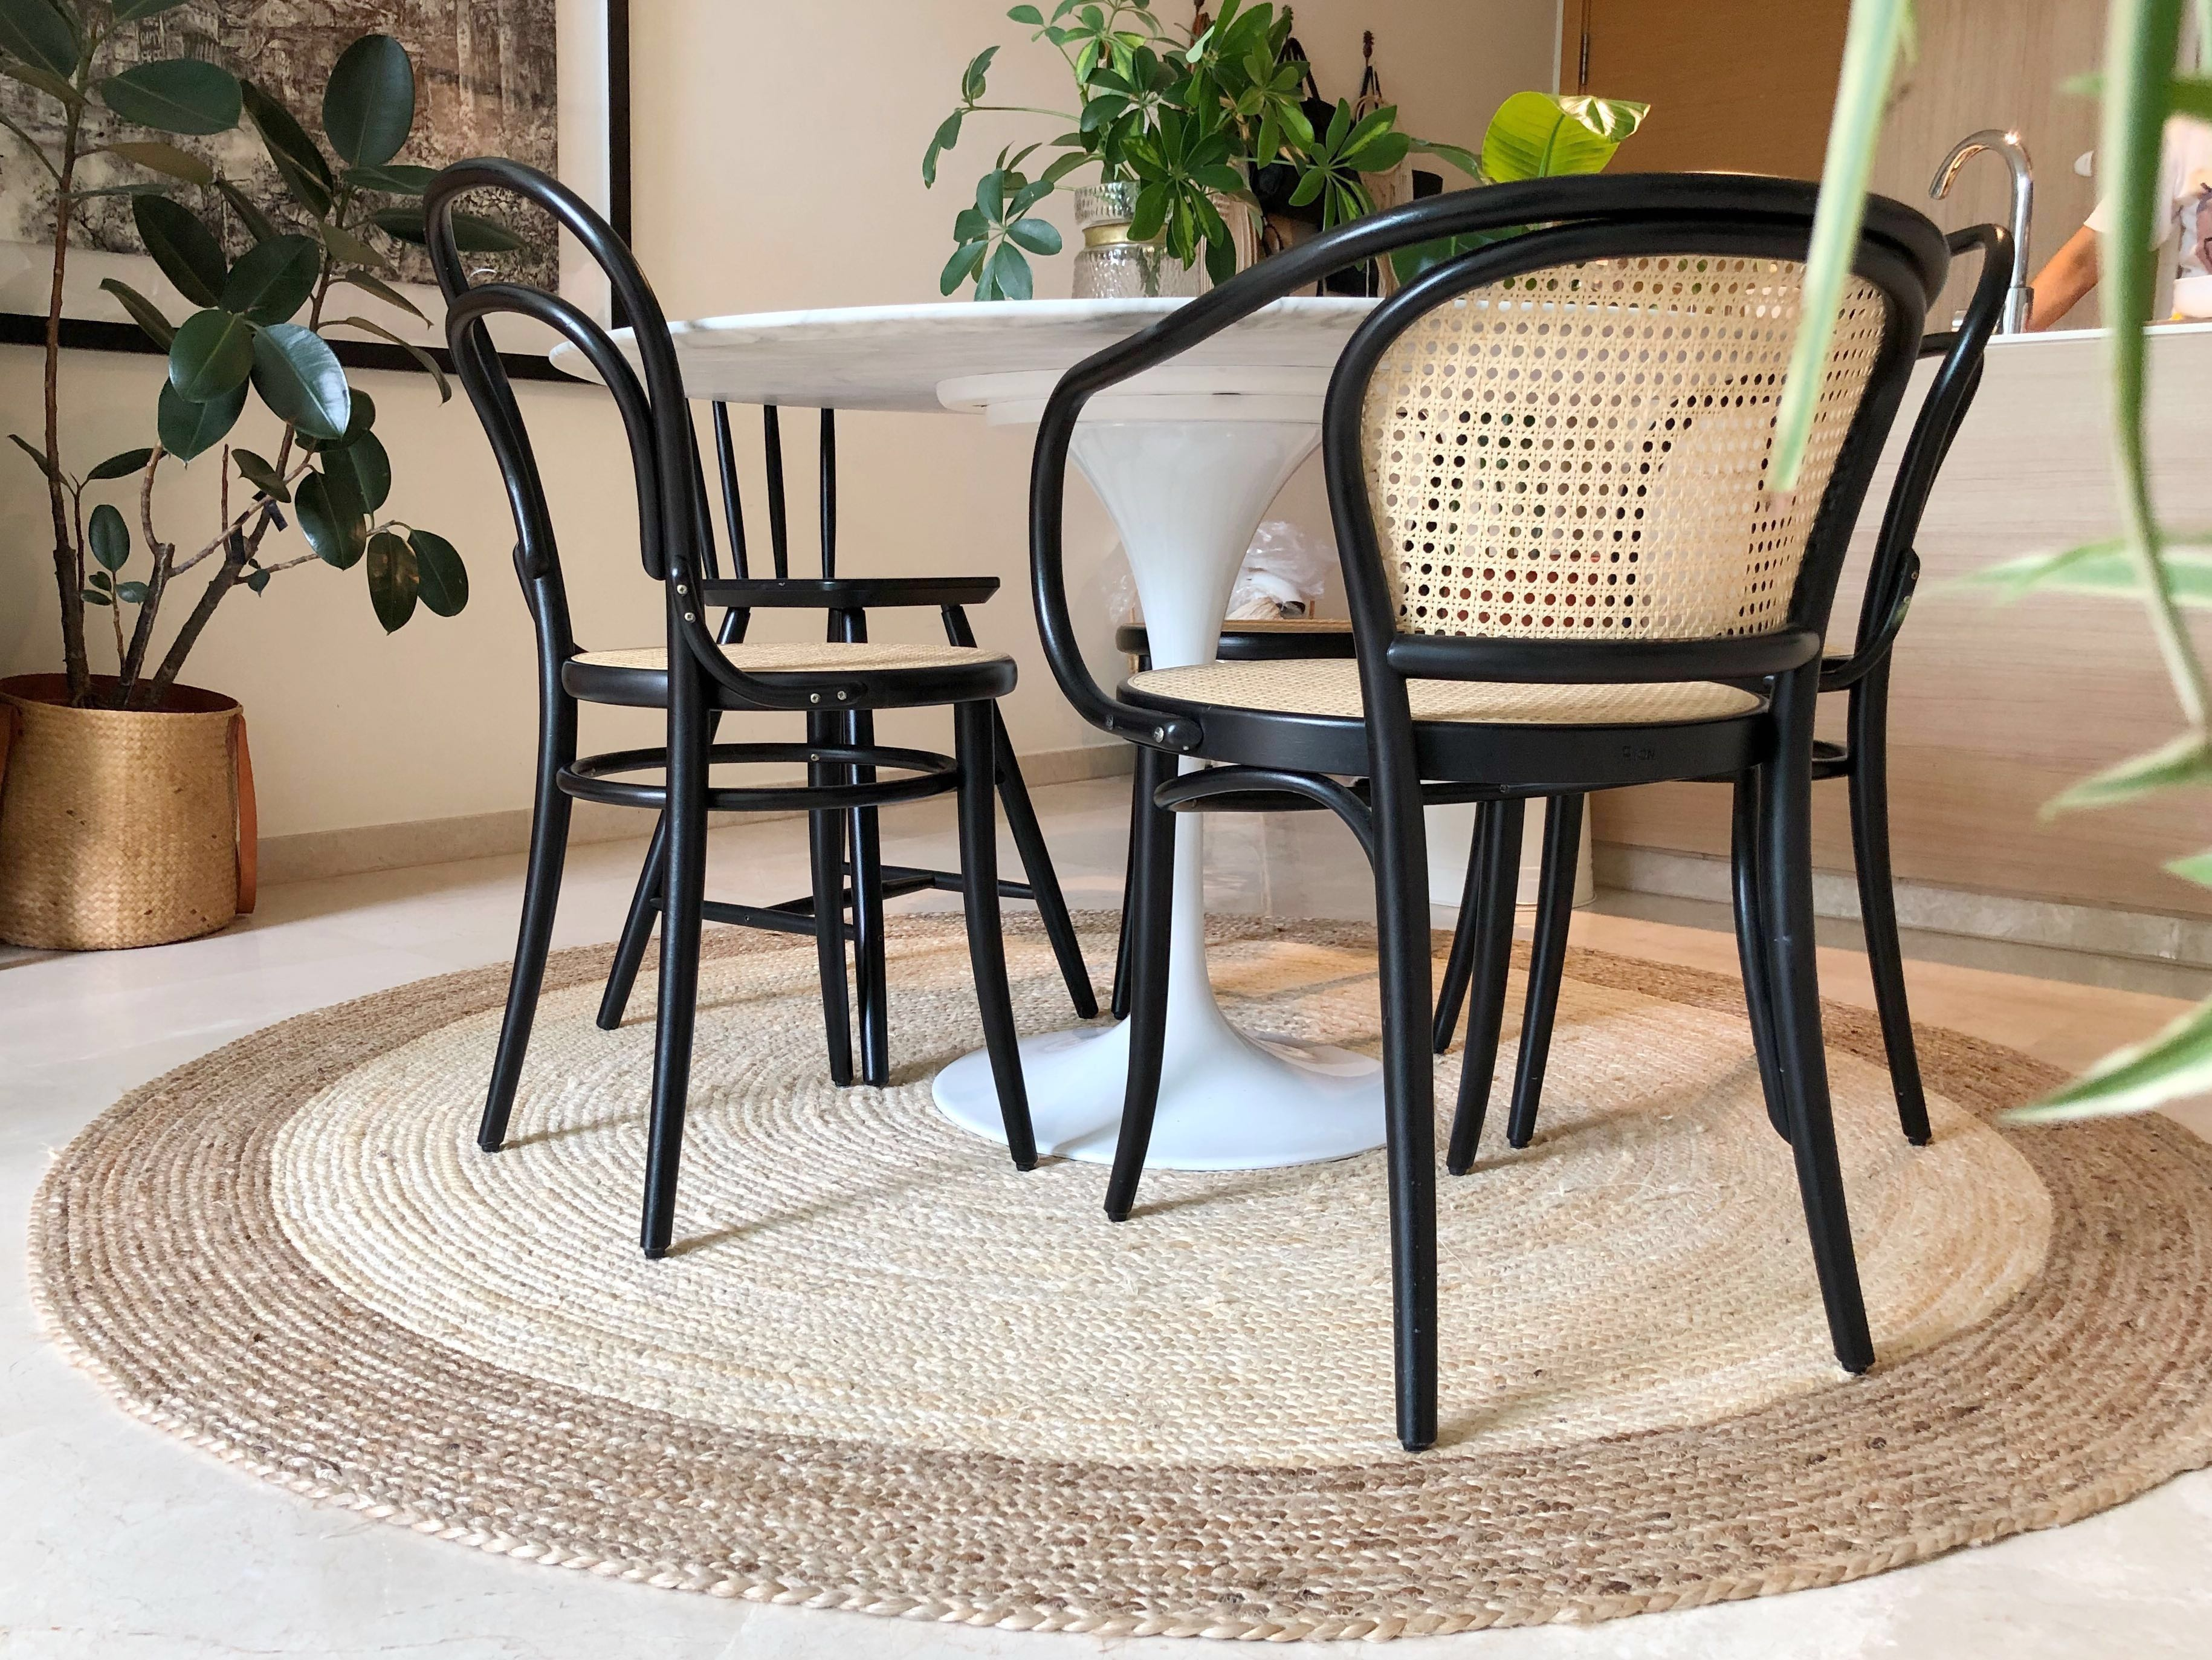 Big Jute Round Rug India 200cm Furniture Others On Carousell